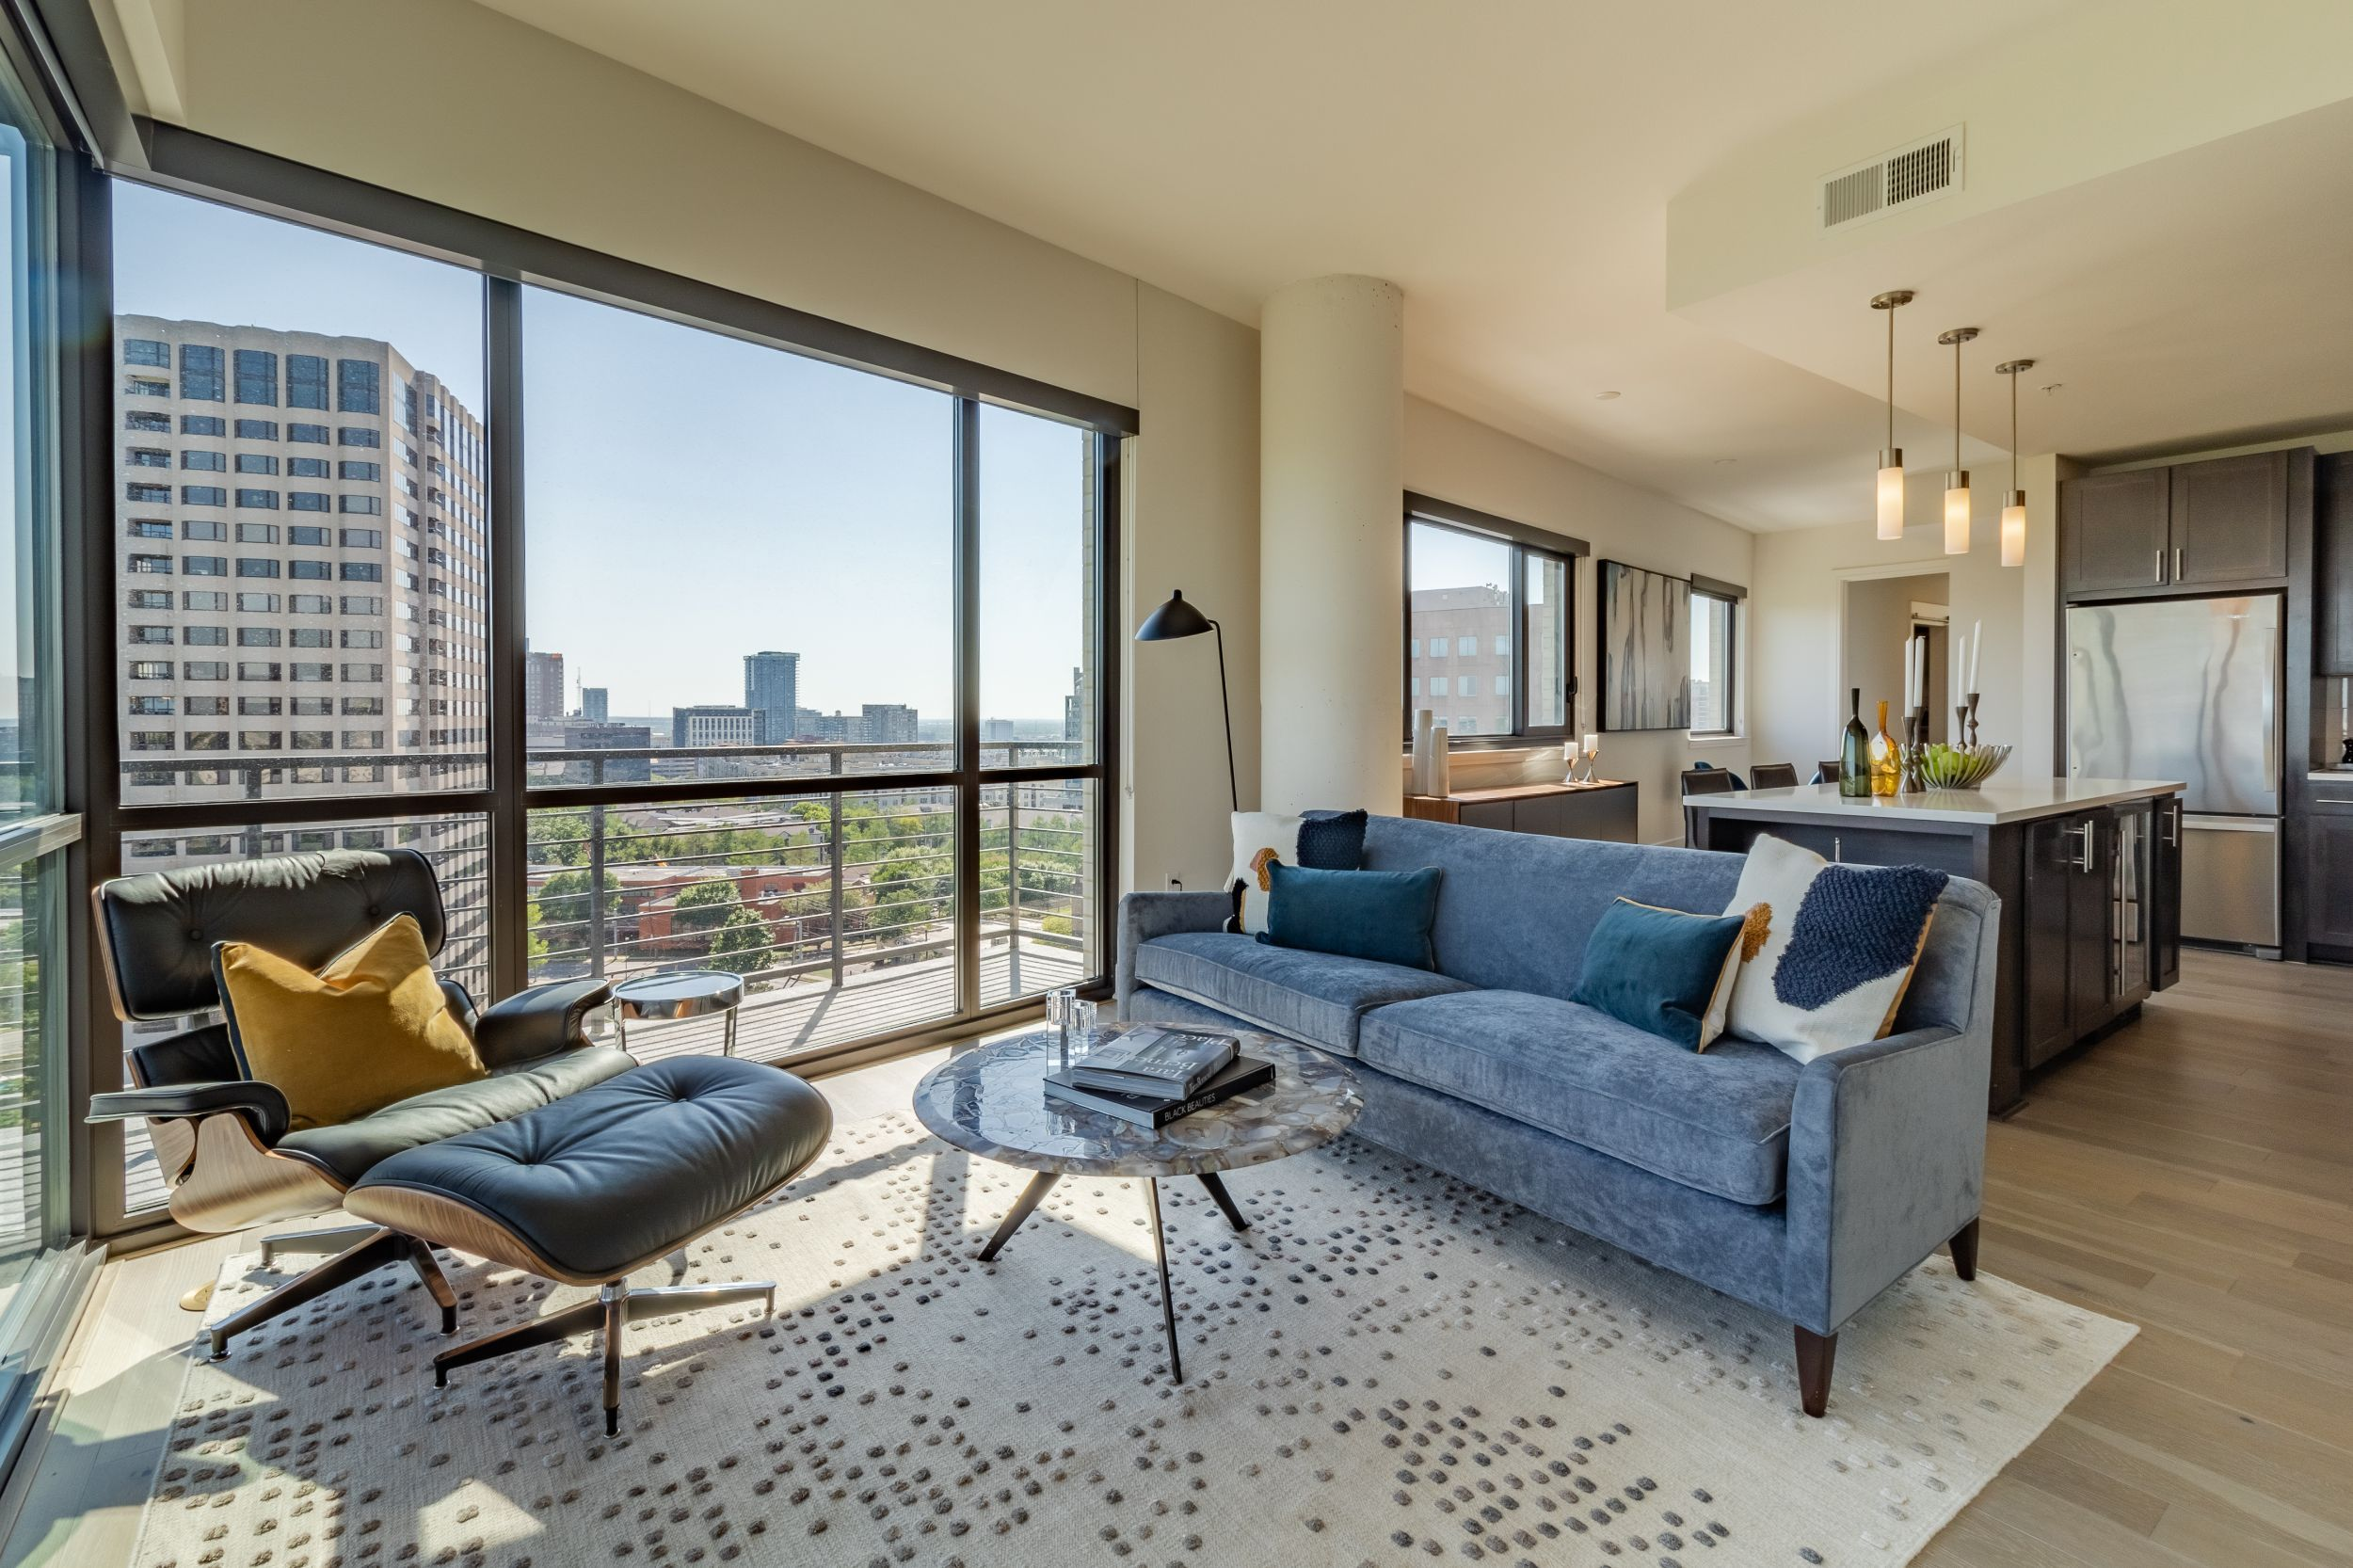 apartment living room with view of city